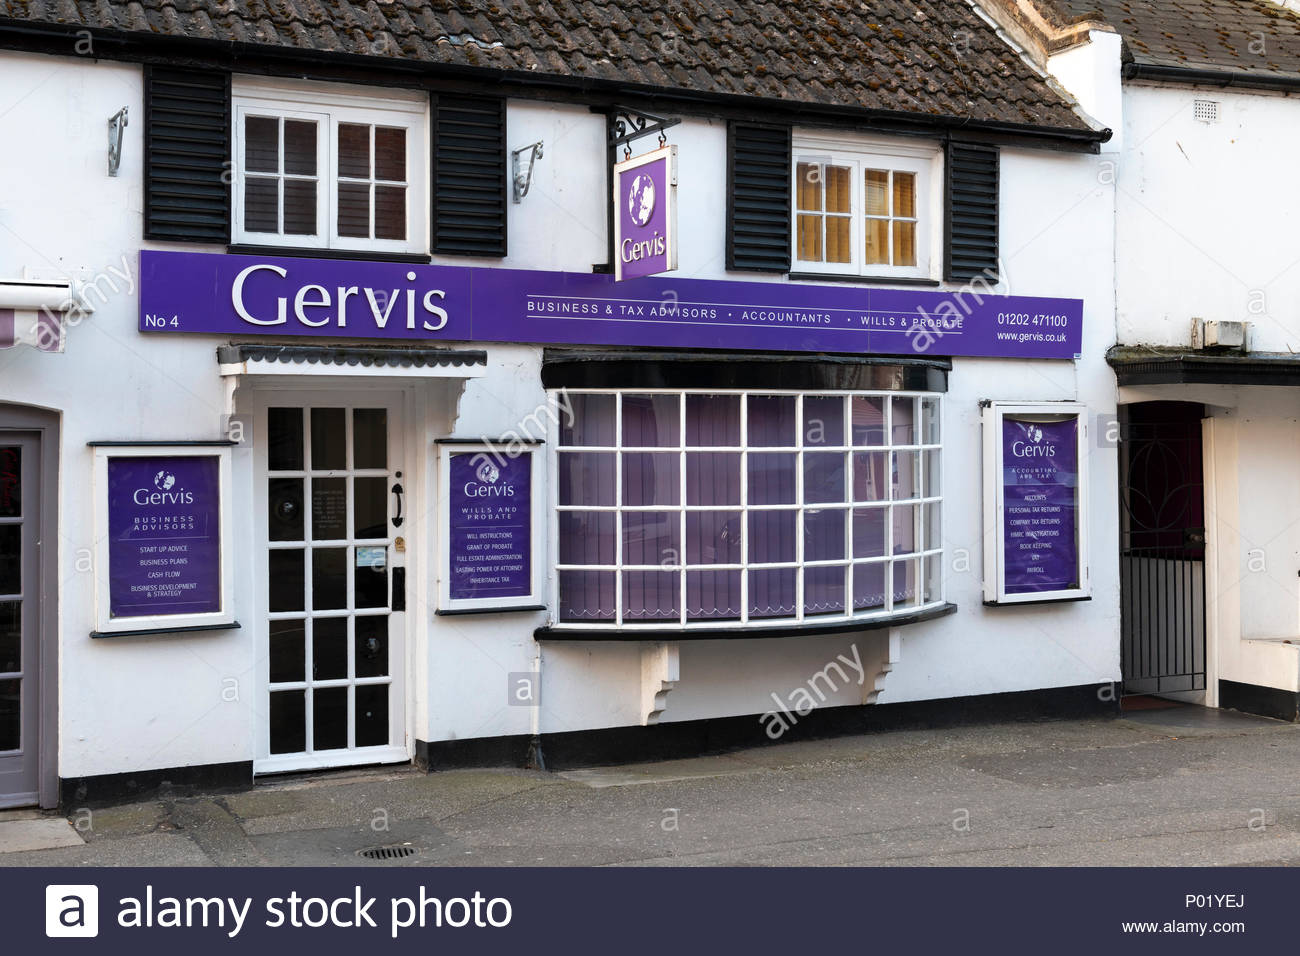 Gervis accountants, Wick Lane, Christchurch, Dorset, England, UK - Stock Image